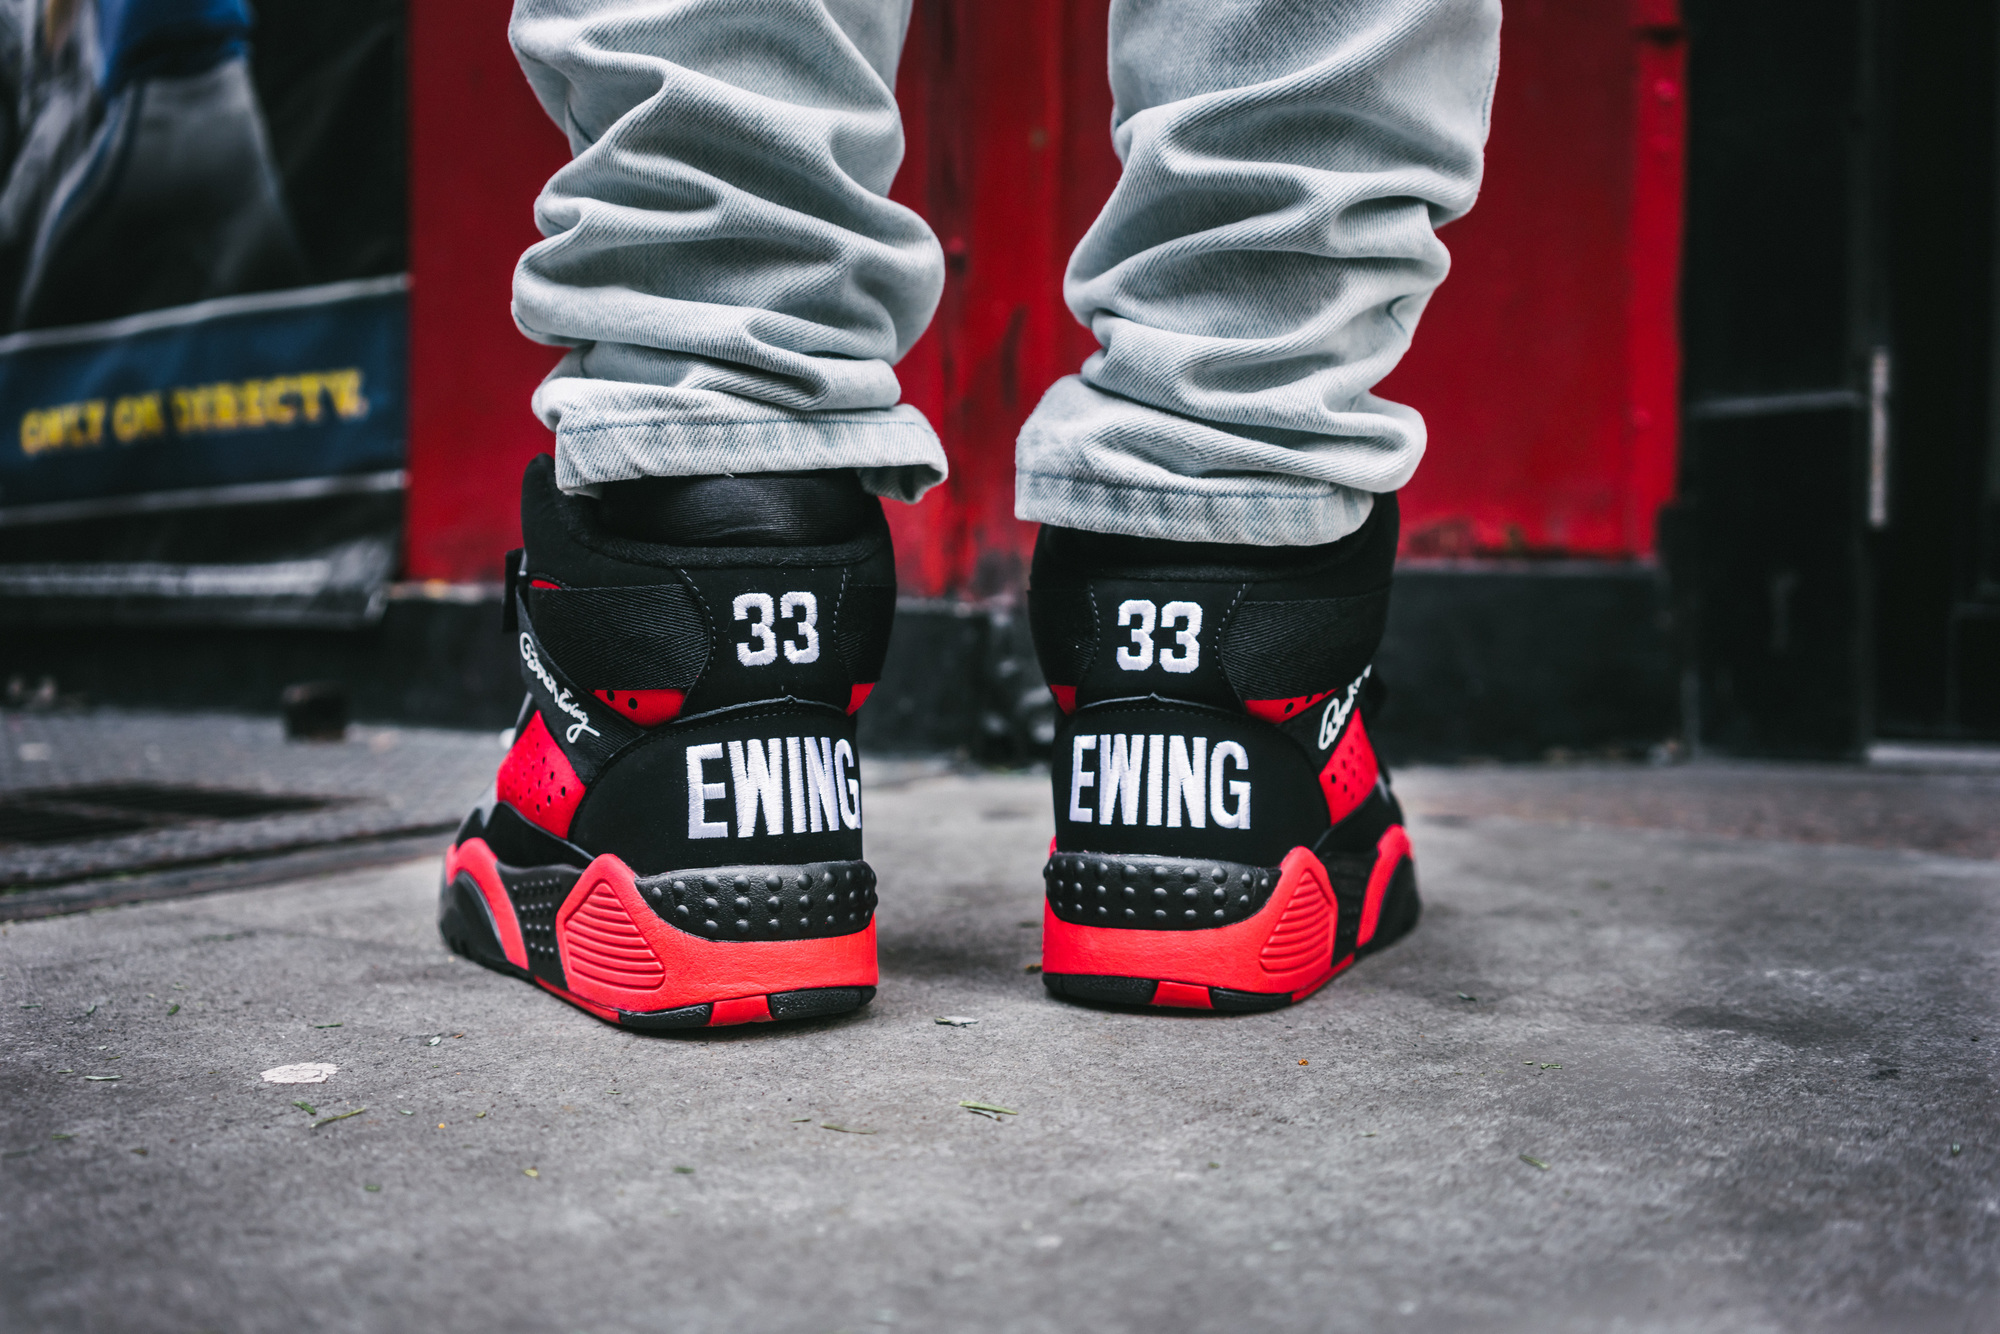 ewing-focus-february-retro-collection